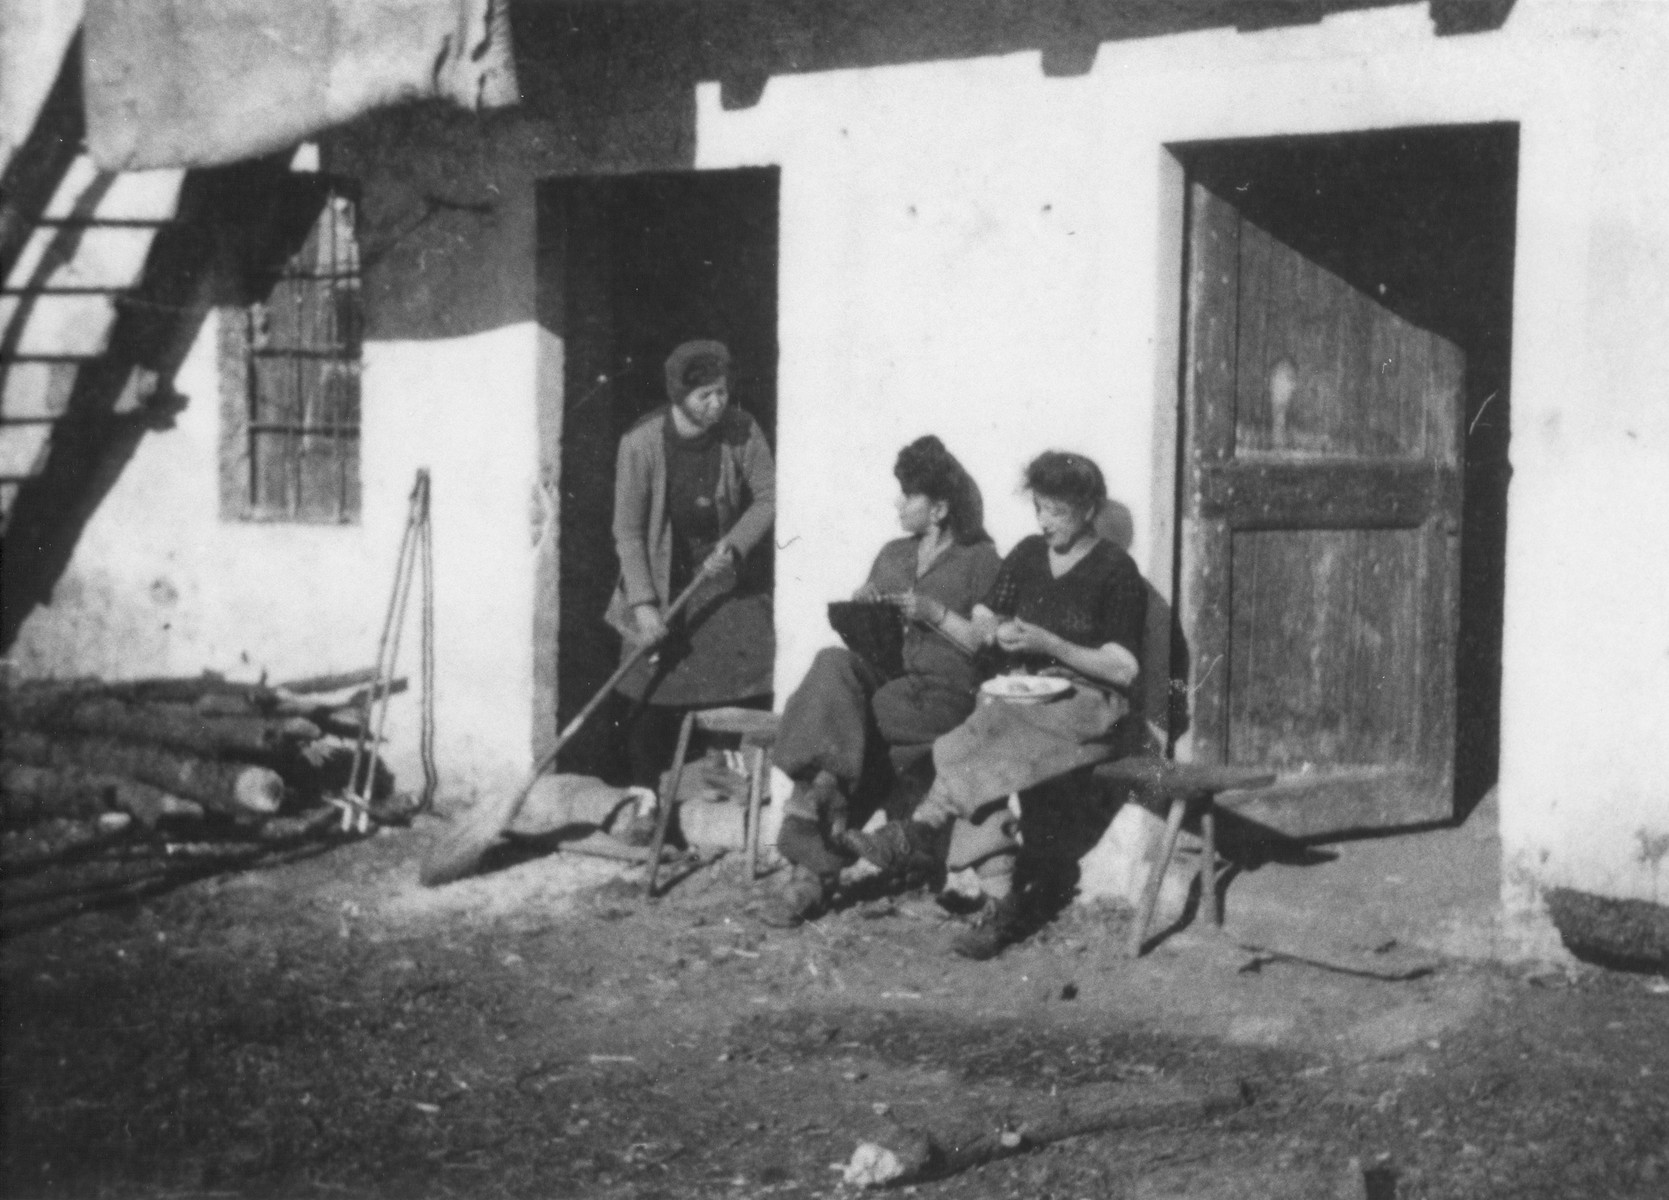 Jewish refugees perform daily tasks in a farm where they were hiding Valle Stura, Italy after crossing over the border from France.